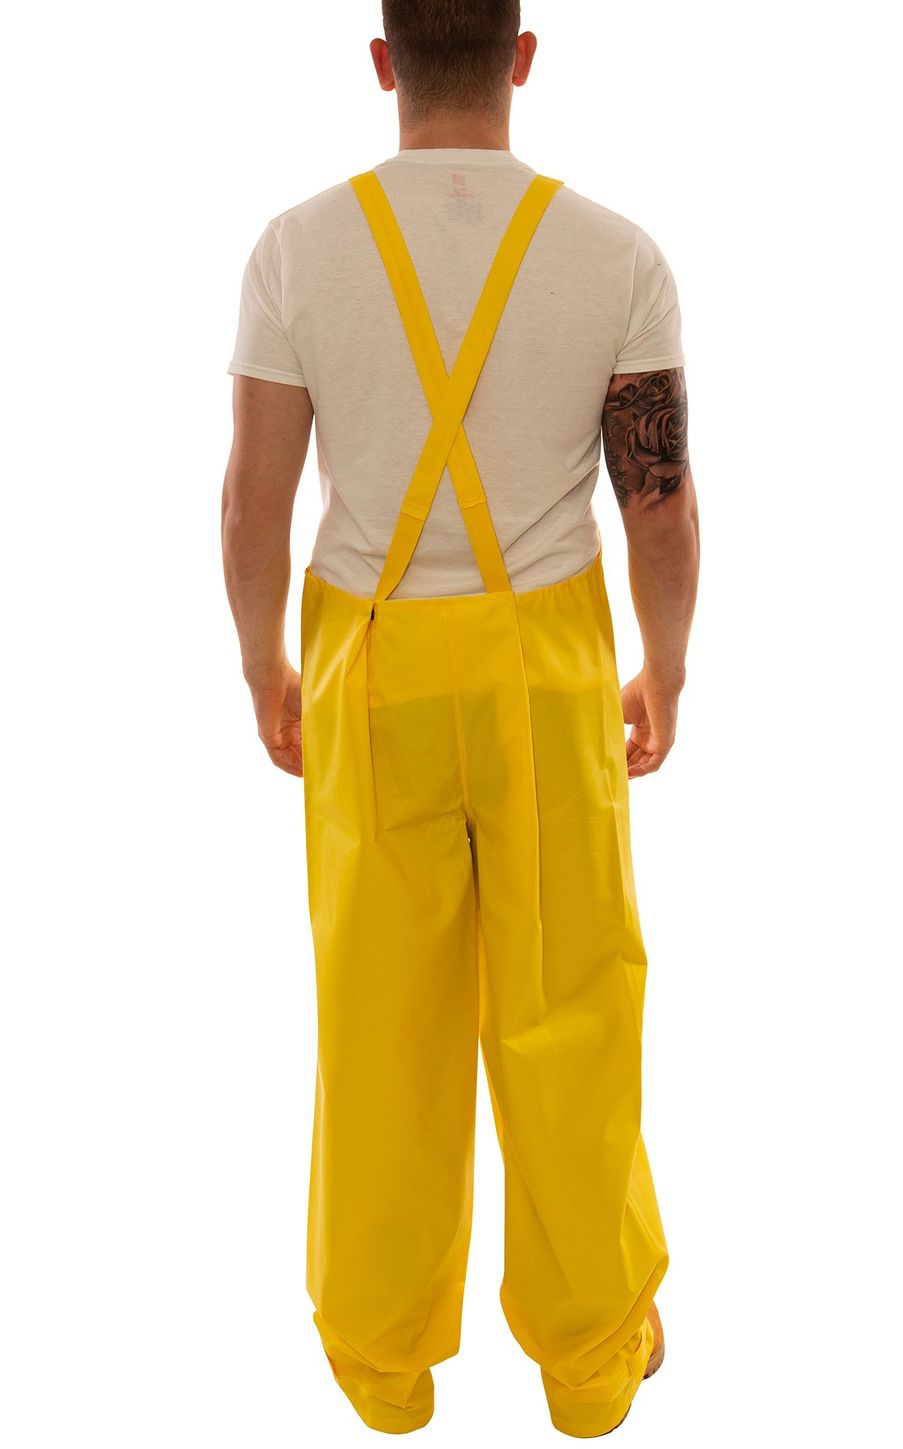 Tingley O56107 DuraScrim™ Fire Resistant Overalls - PVC Coated, Chemical Resistant, with Snap Fly Front Back